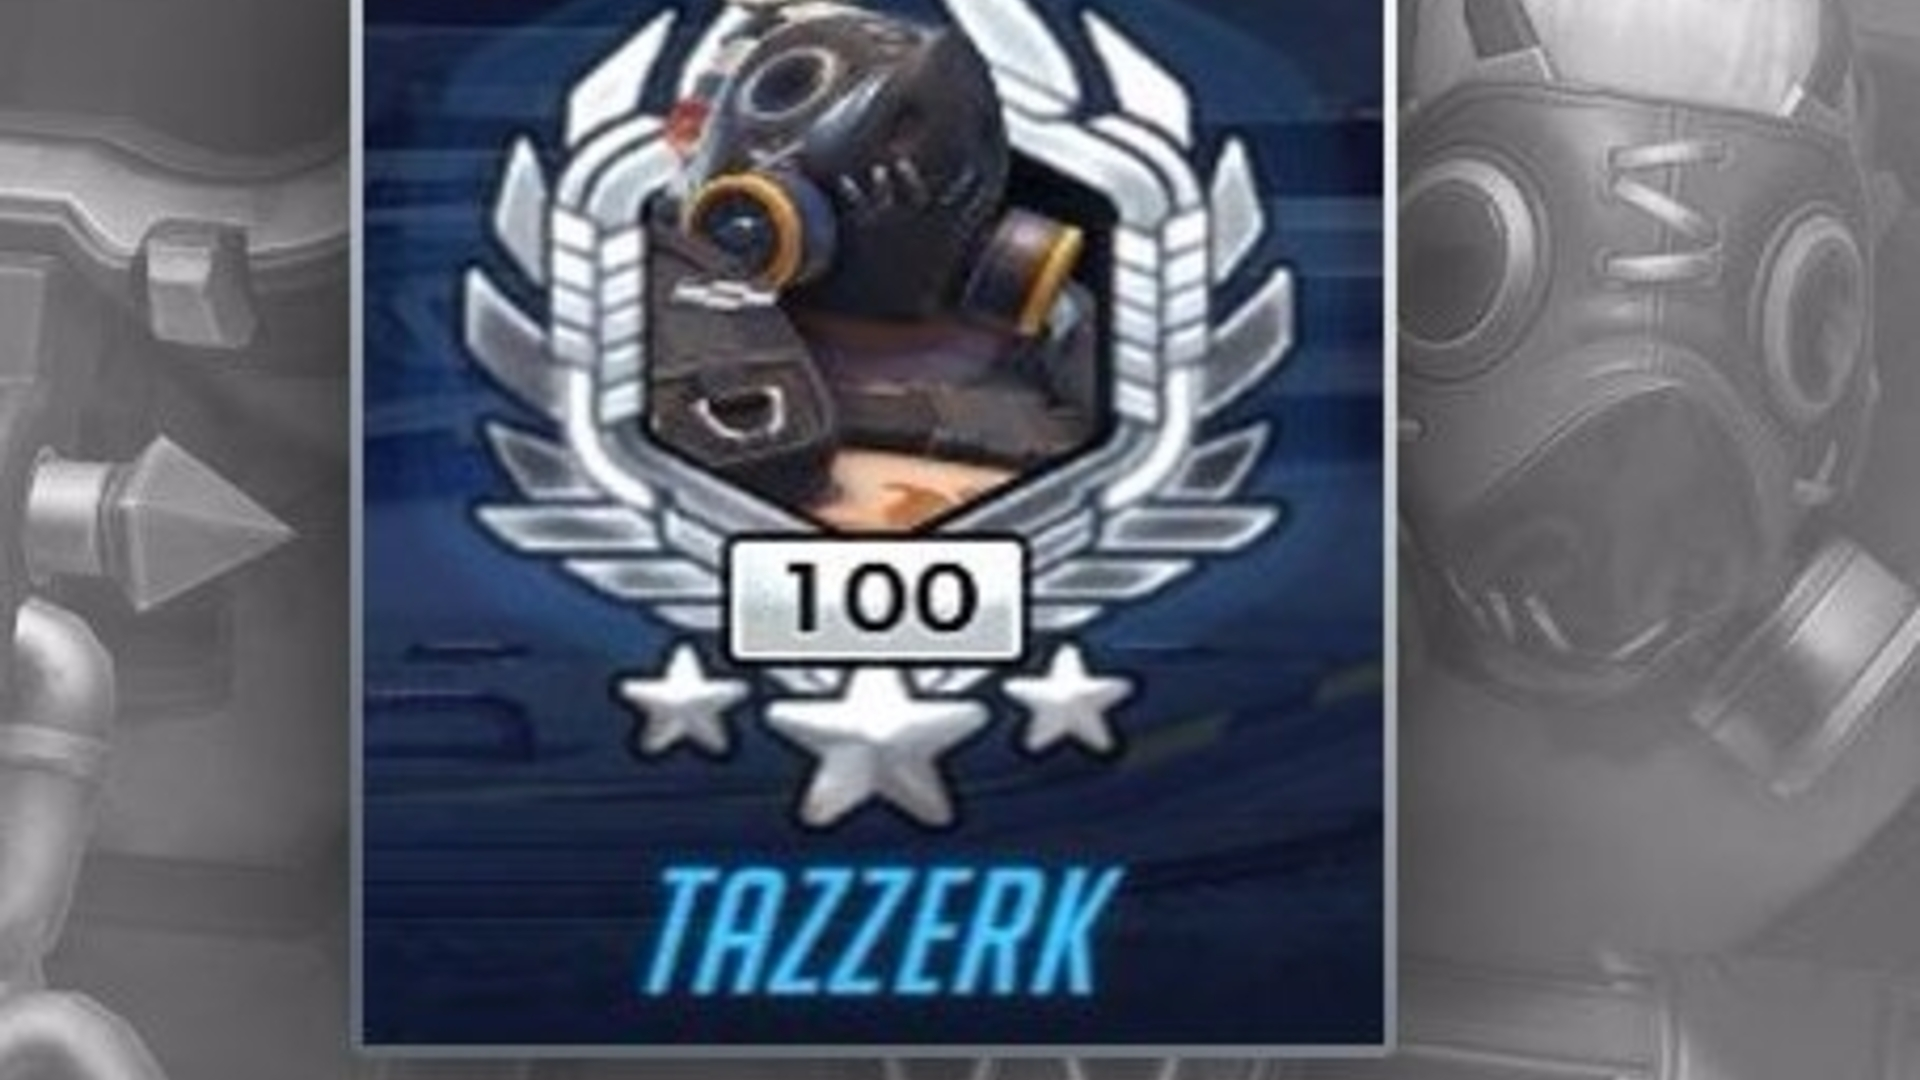 meet the first person to reach level 1000 in overwatch eurogamer net